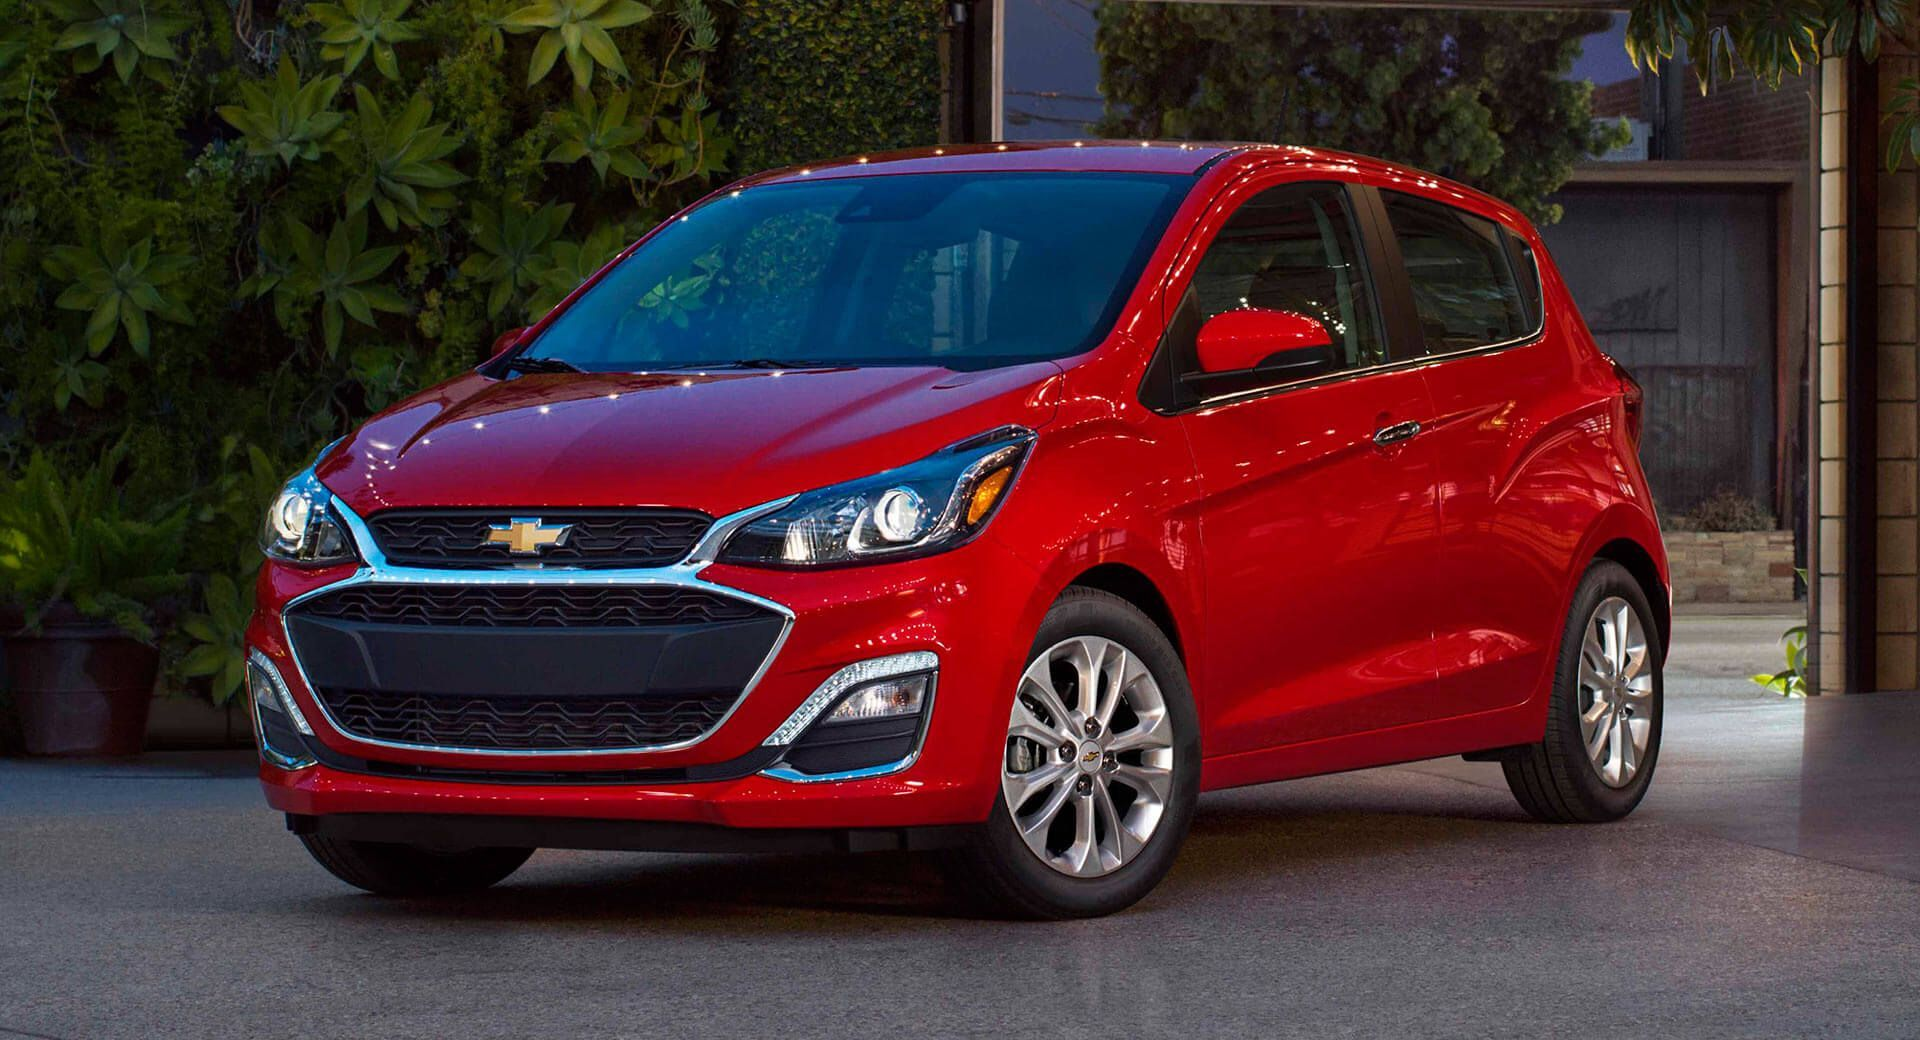 2019 Chevrolet Spark Is Here Too With Modest Revisions Chevrolet Spark Chevrolet Spark Ls Chevrolet